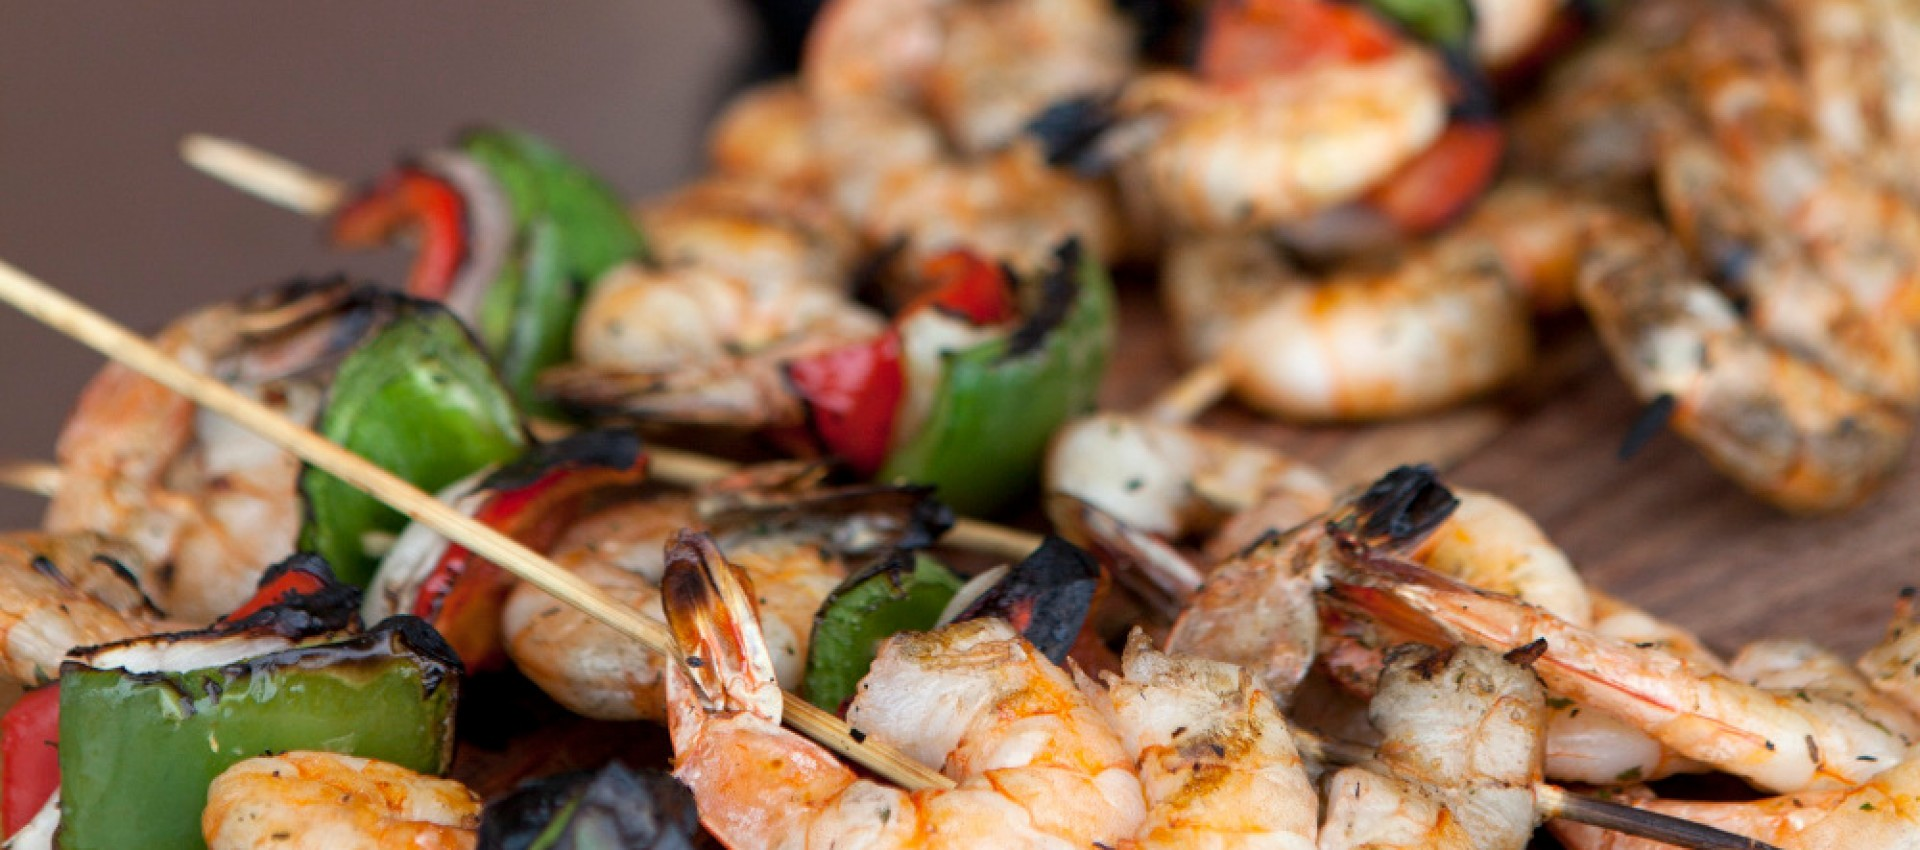 Shrimp Skewers Image